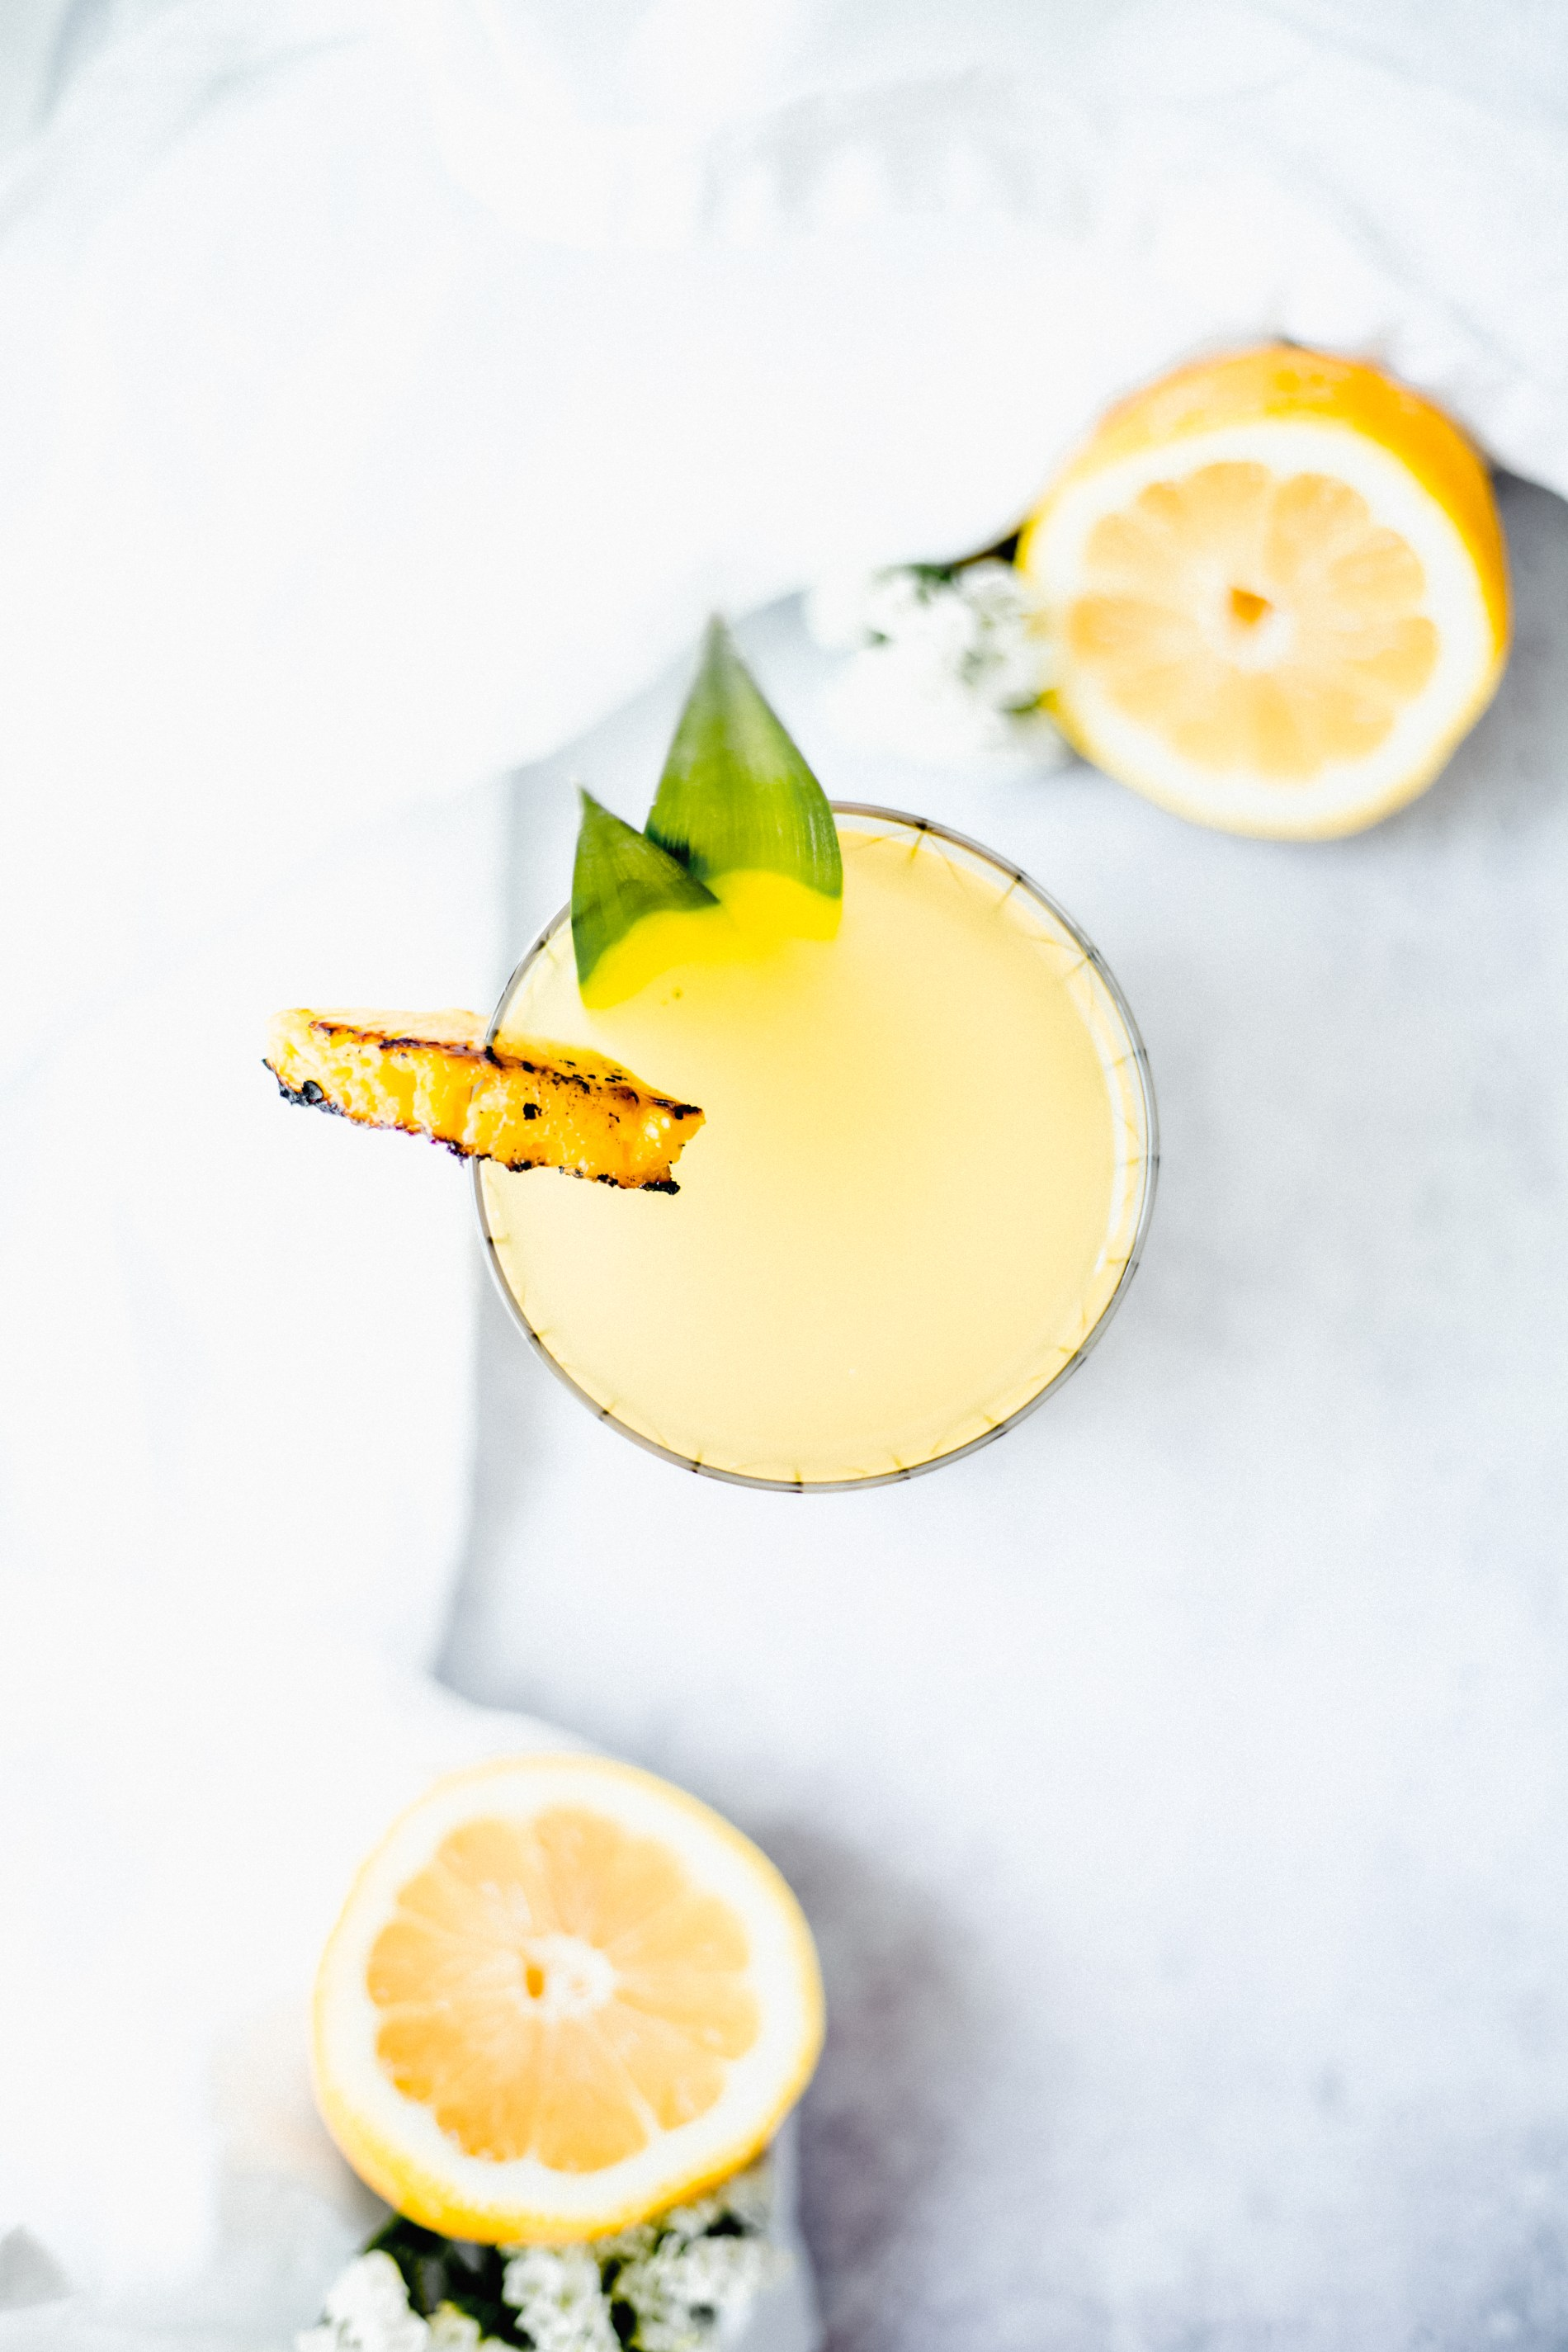 The cocktail that will be on repeat all summer long- Spiked Grilled Pineapple Lemonade! sweetened with Maple Syrup and a splash of Malibu Rum. #summercocktails #cocktailrecipes #pineapplecocktails #lemonade